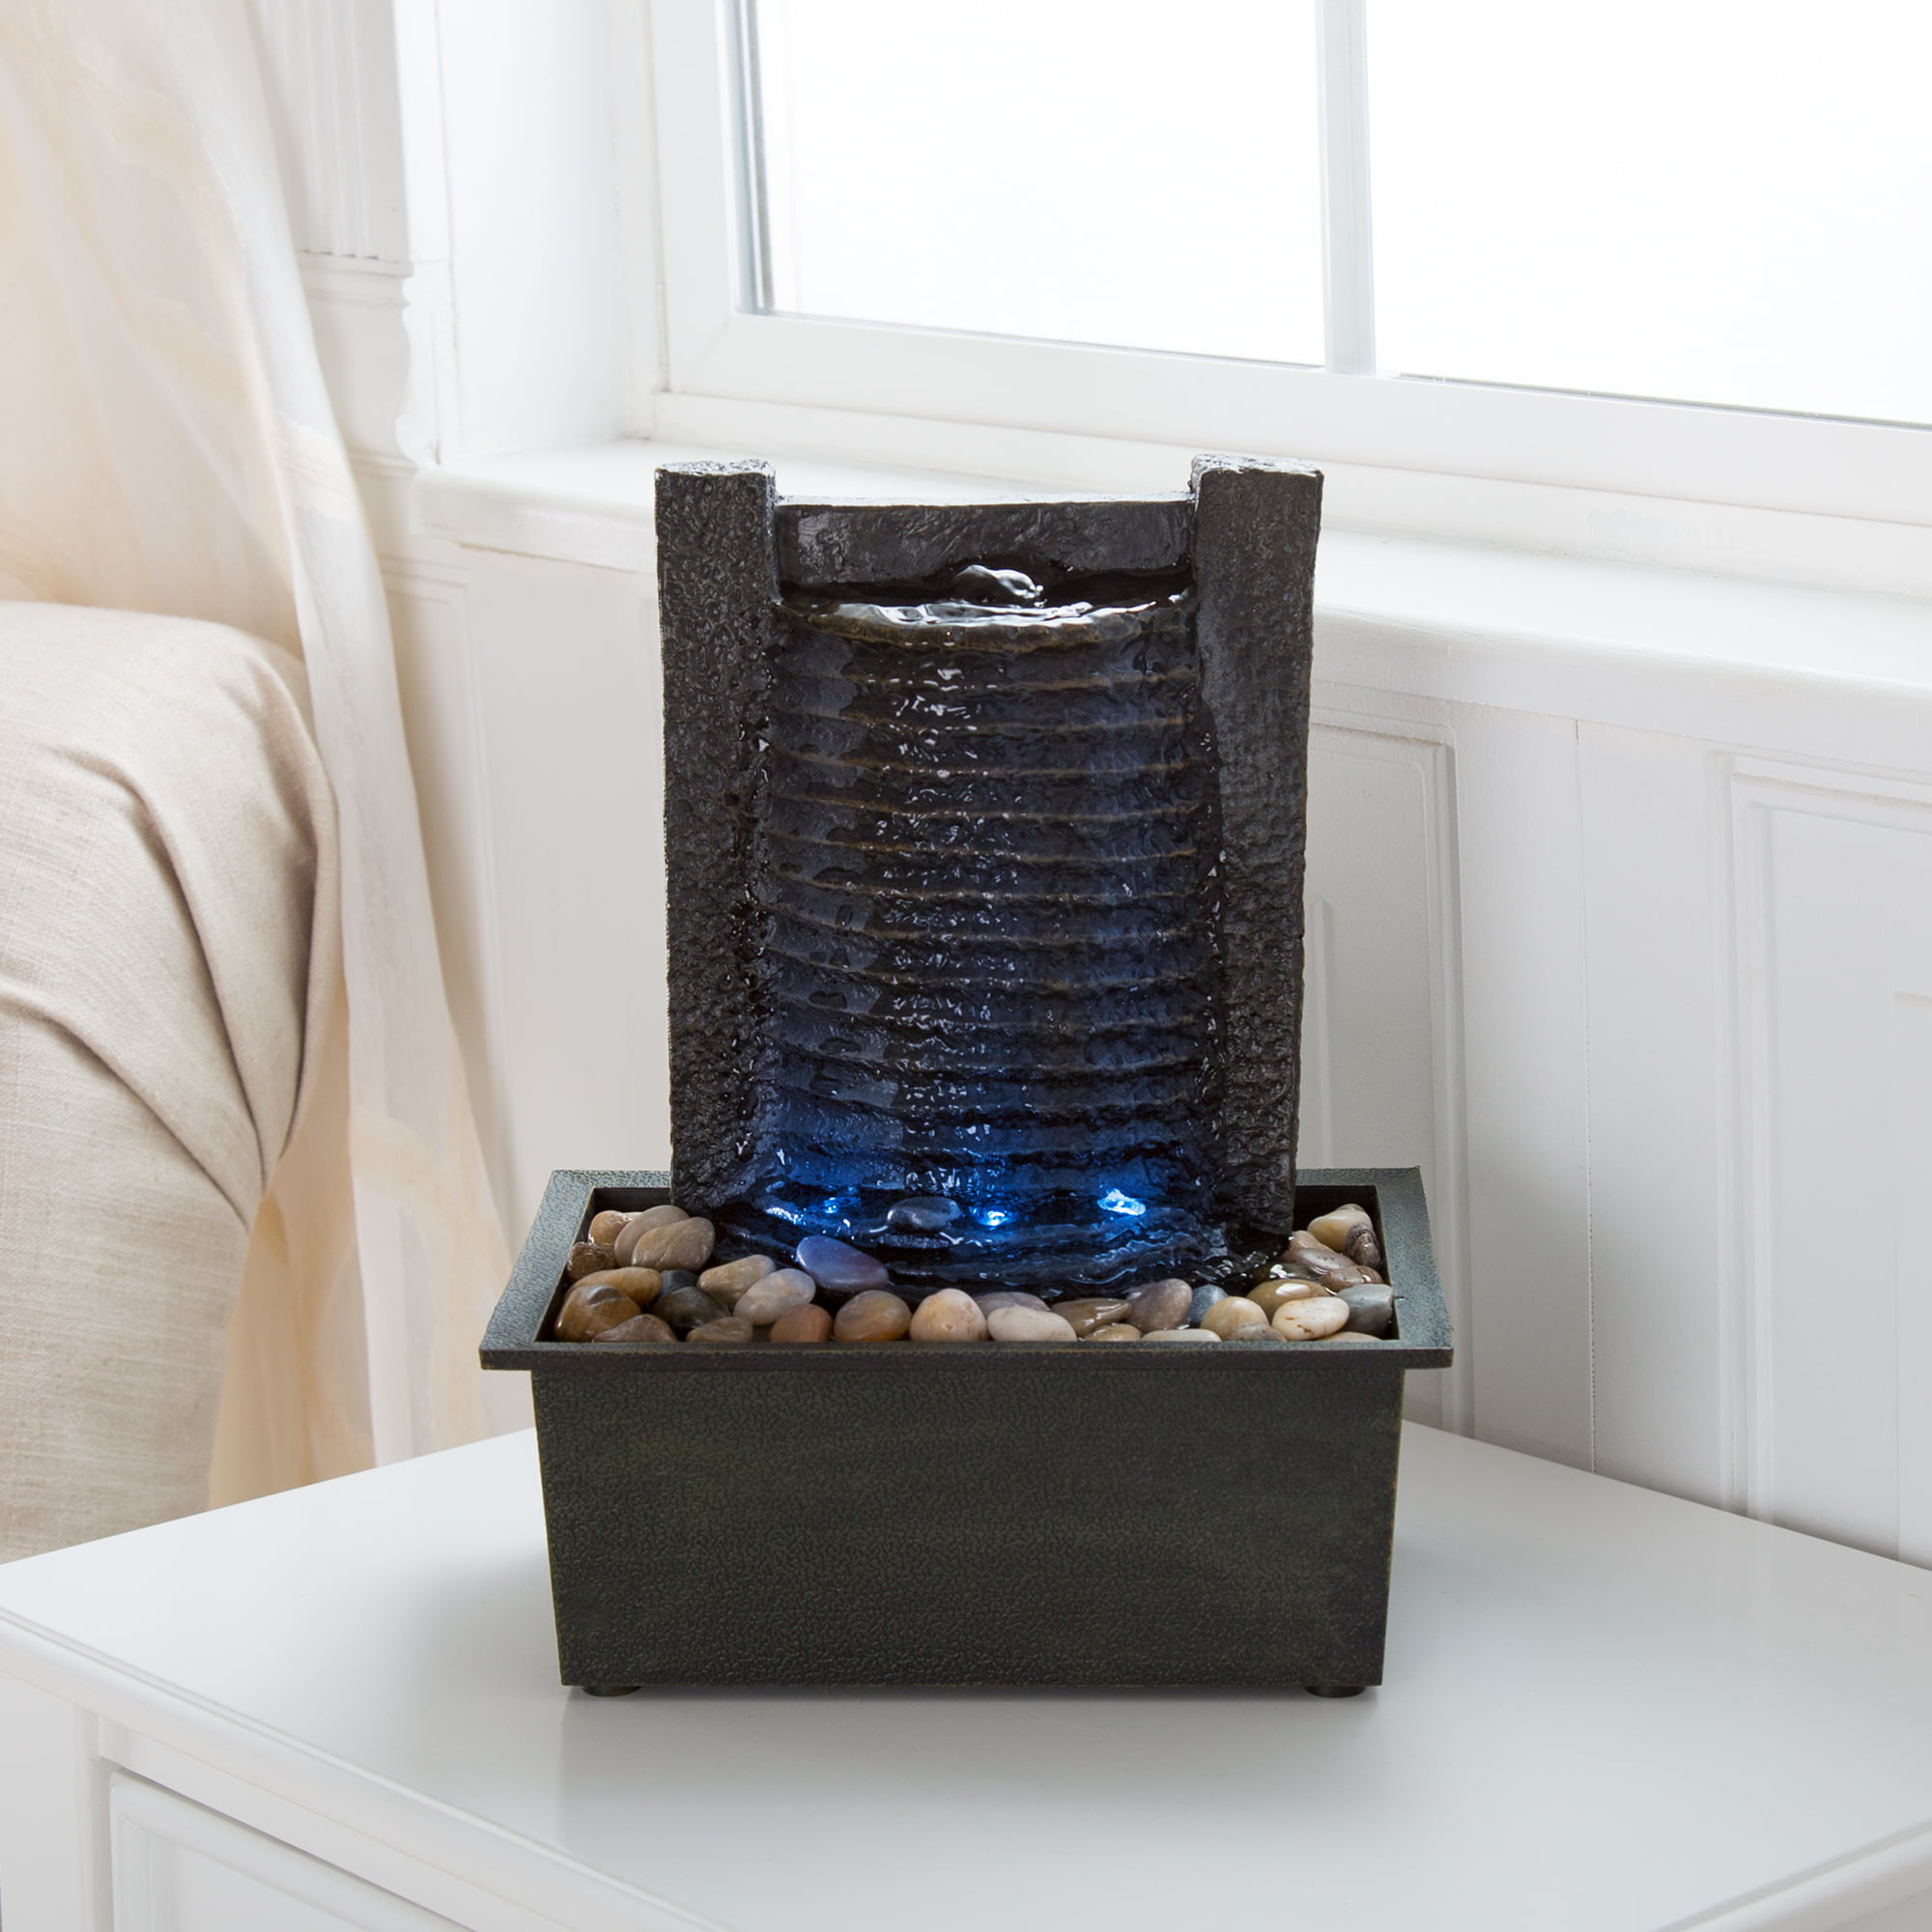 Indoor Water Fountain With LED Lights- Lighted Waterfall Tabletop Fountain With Stone Wall and Soothing Sound for Office... by Trademark Global LLC